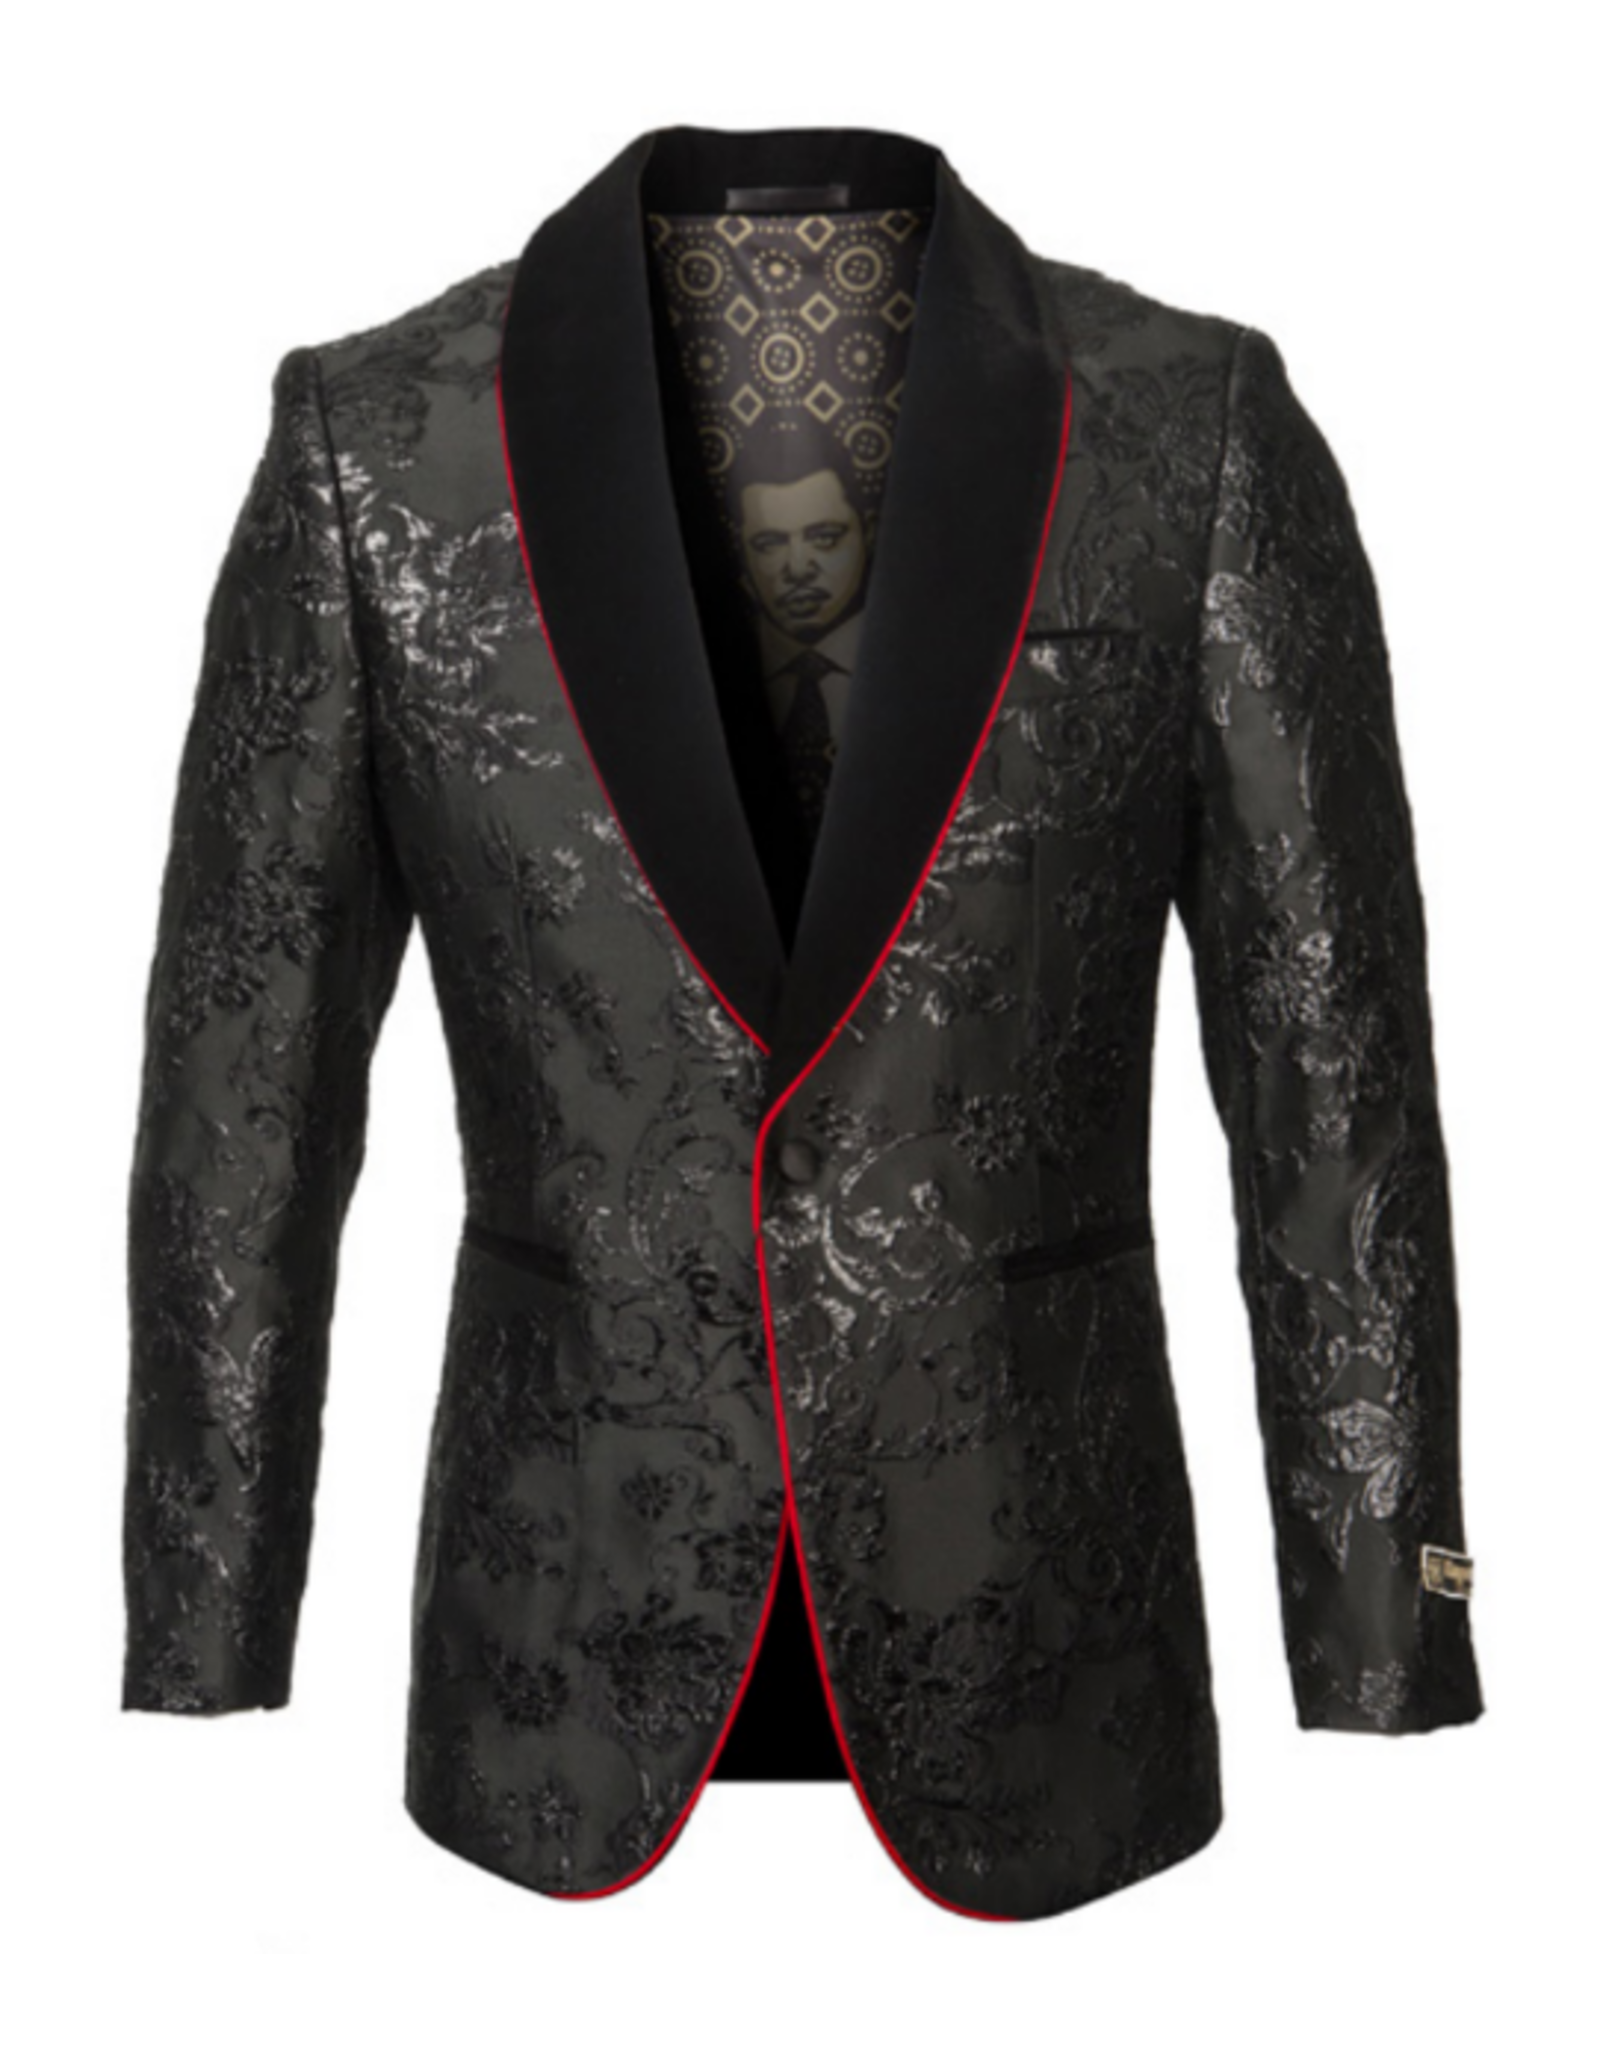 Empire Empire Blazer - ME276H01 Black/Red